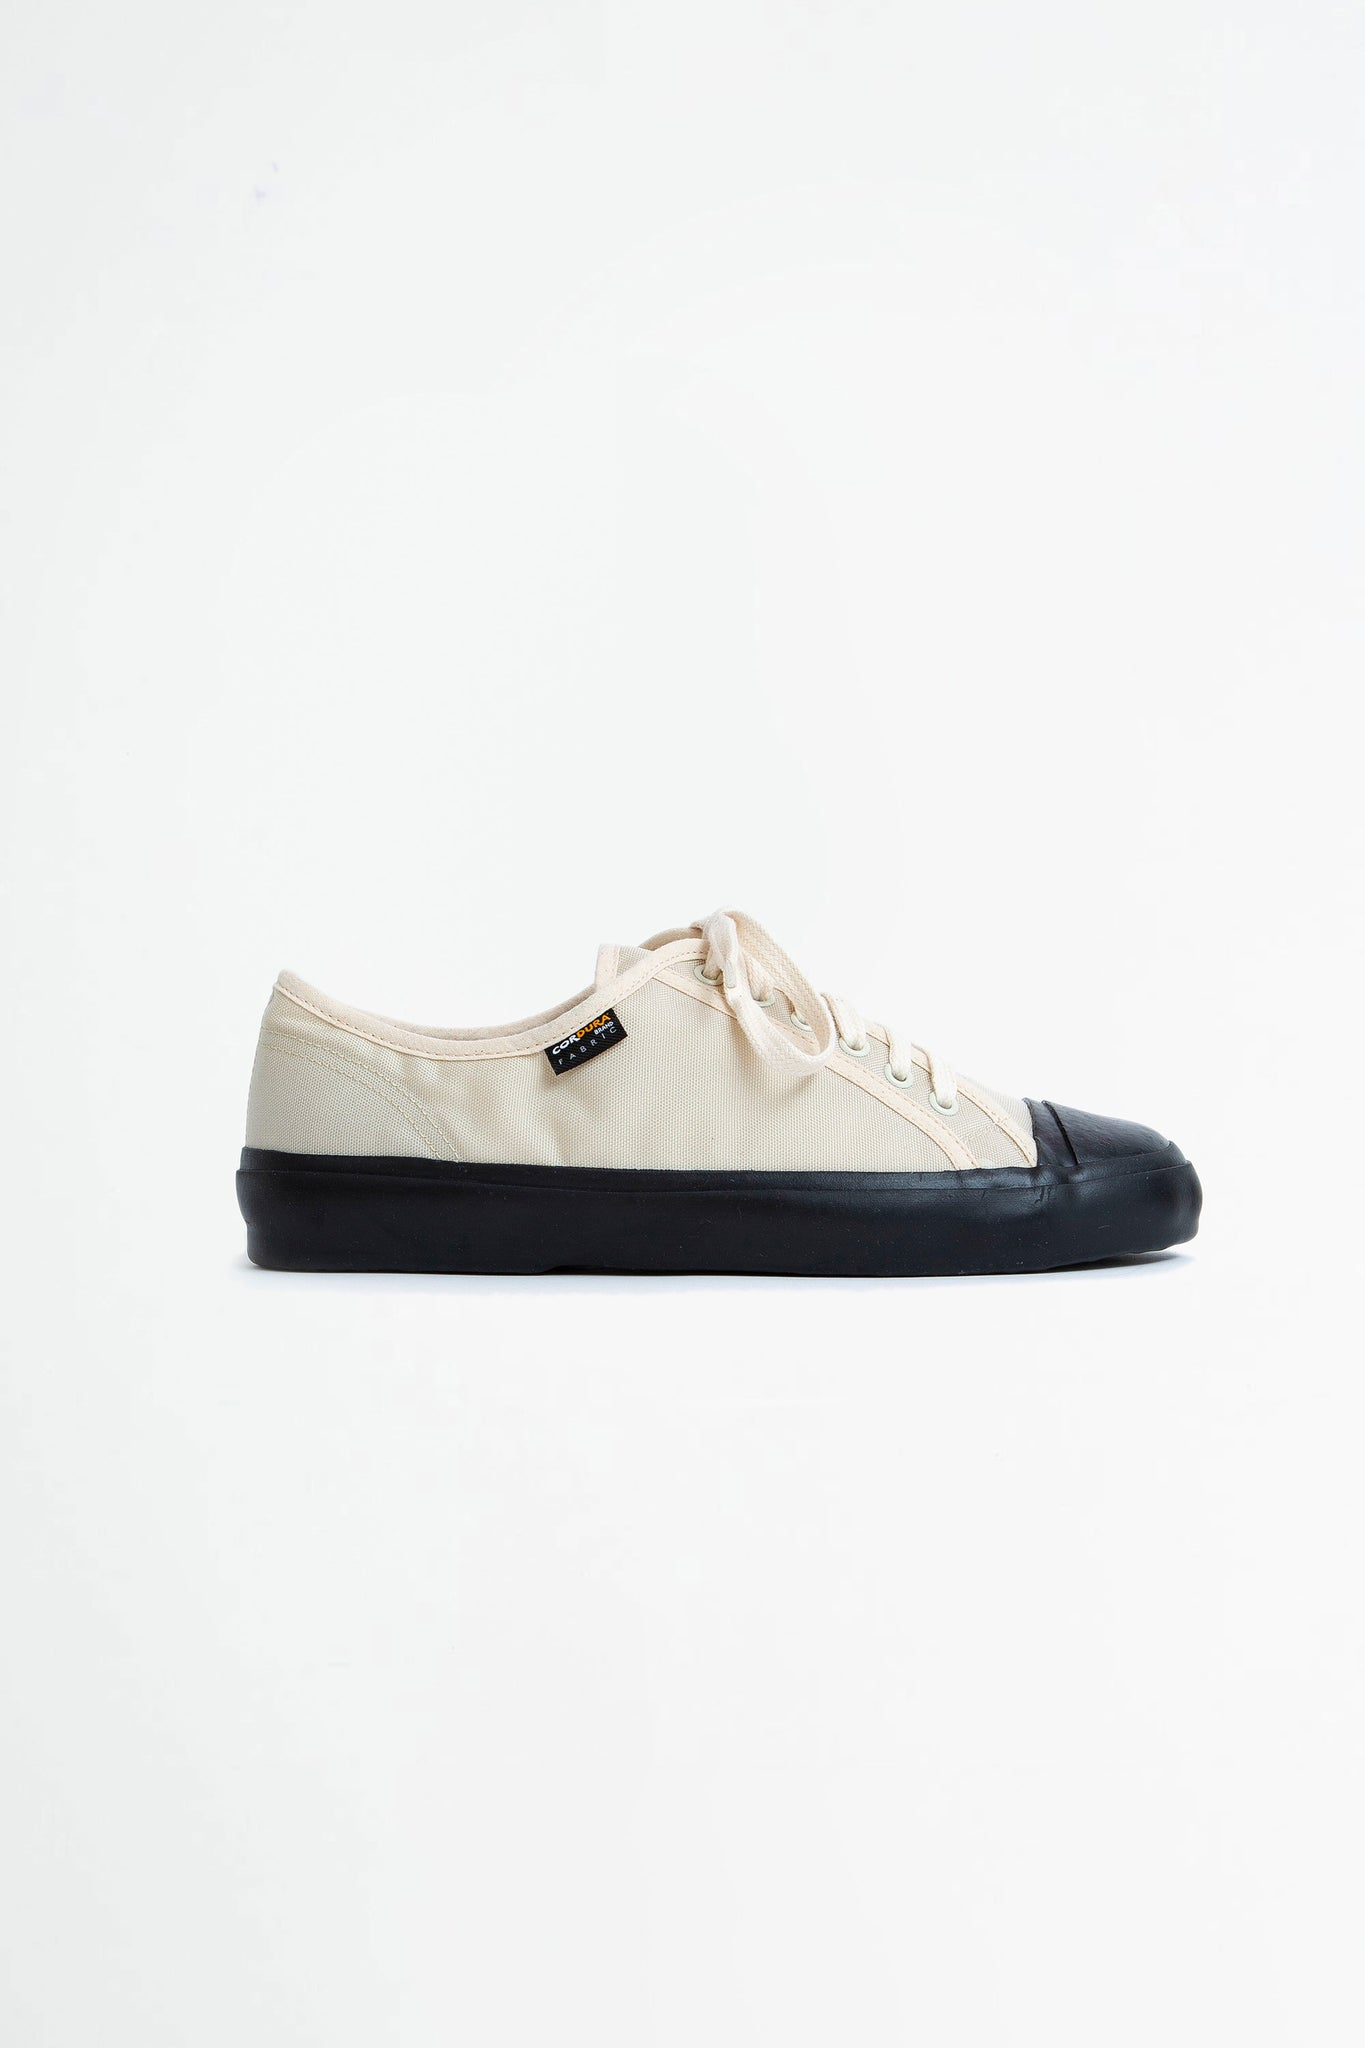 US navy military trainer natural/black sole